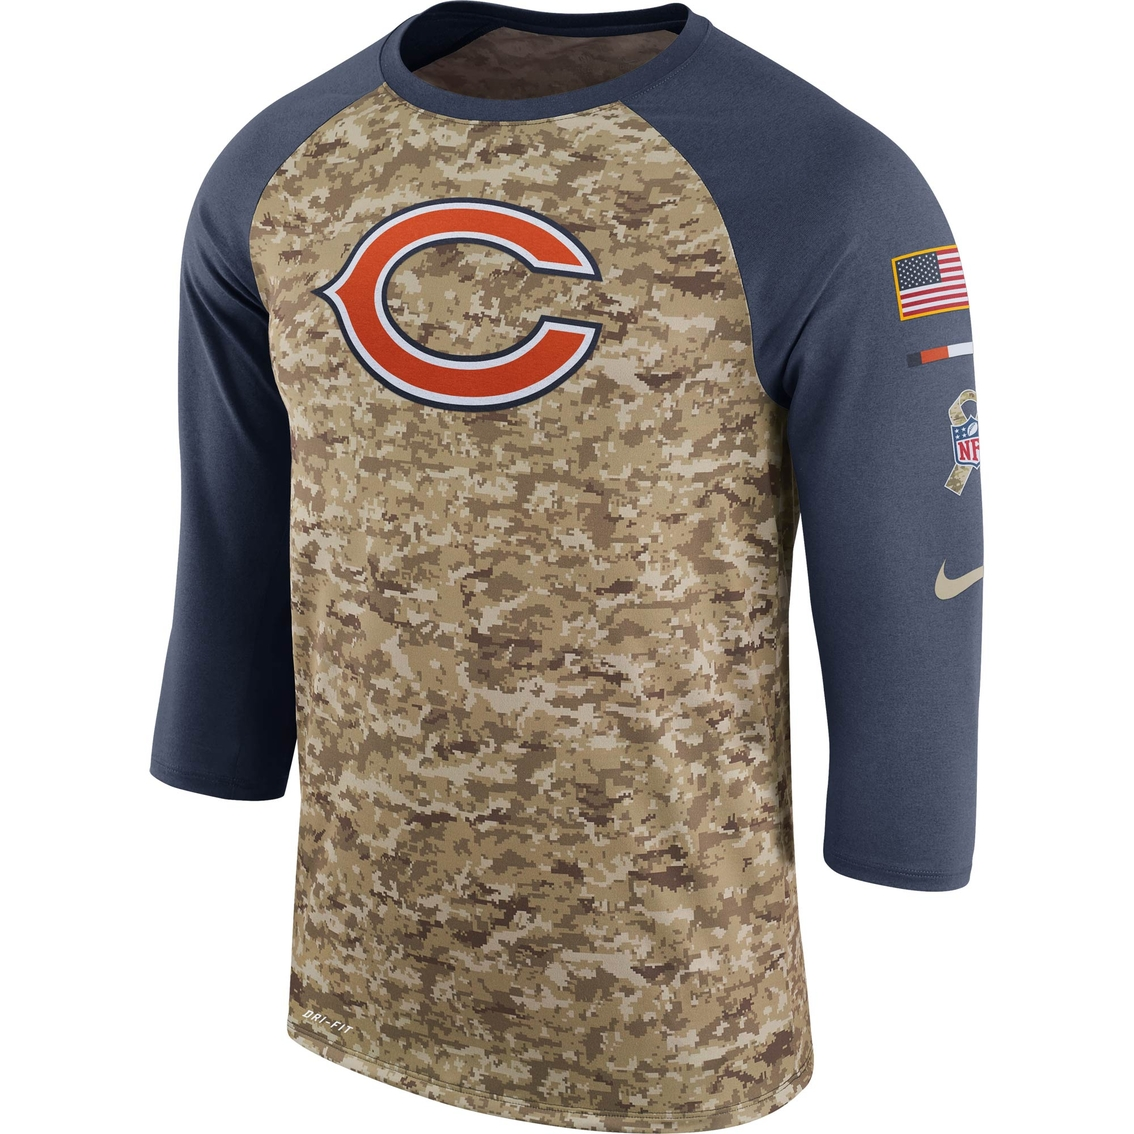 new styles 97d6a 3c5ee Nike Nfl Chicago Bears Salute To Service Raglan Tee | Shirts ...